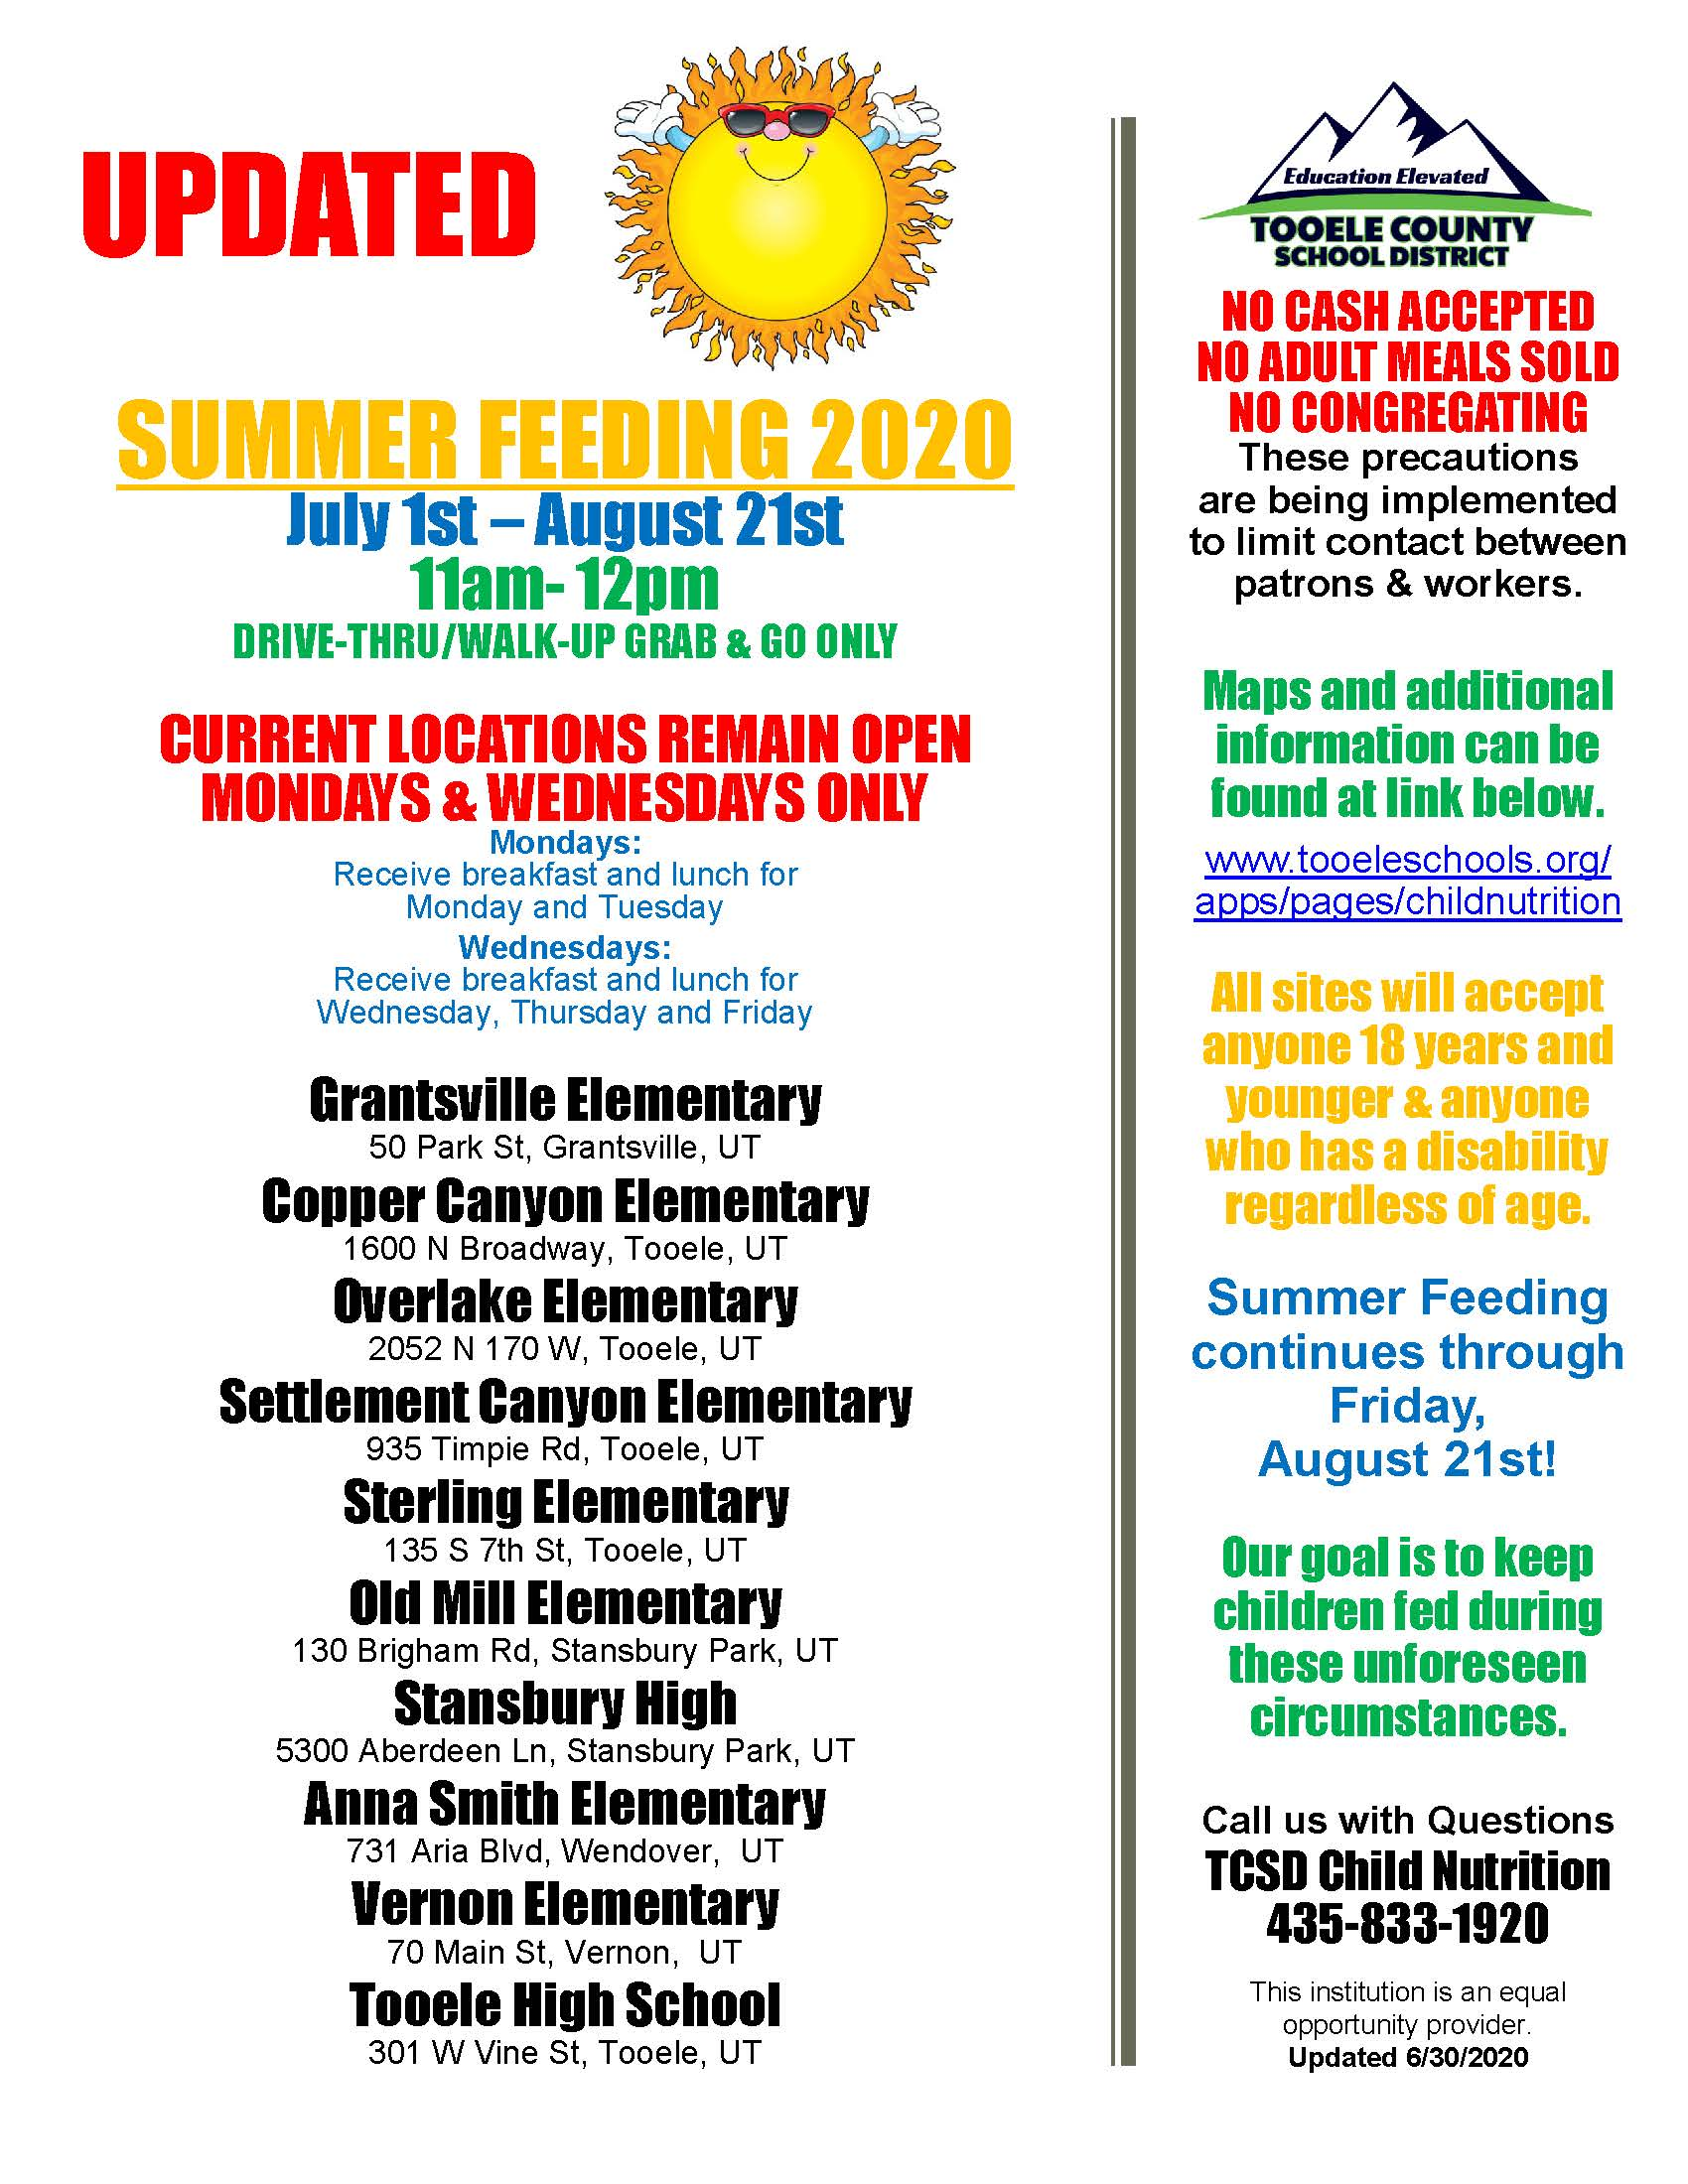 Summer Feeding Program (FREE BREAKFAST & LUNCH for KIDS) @ See locations listed on the flyer